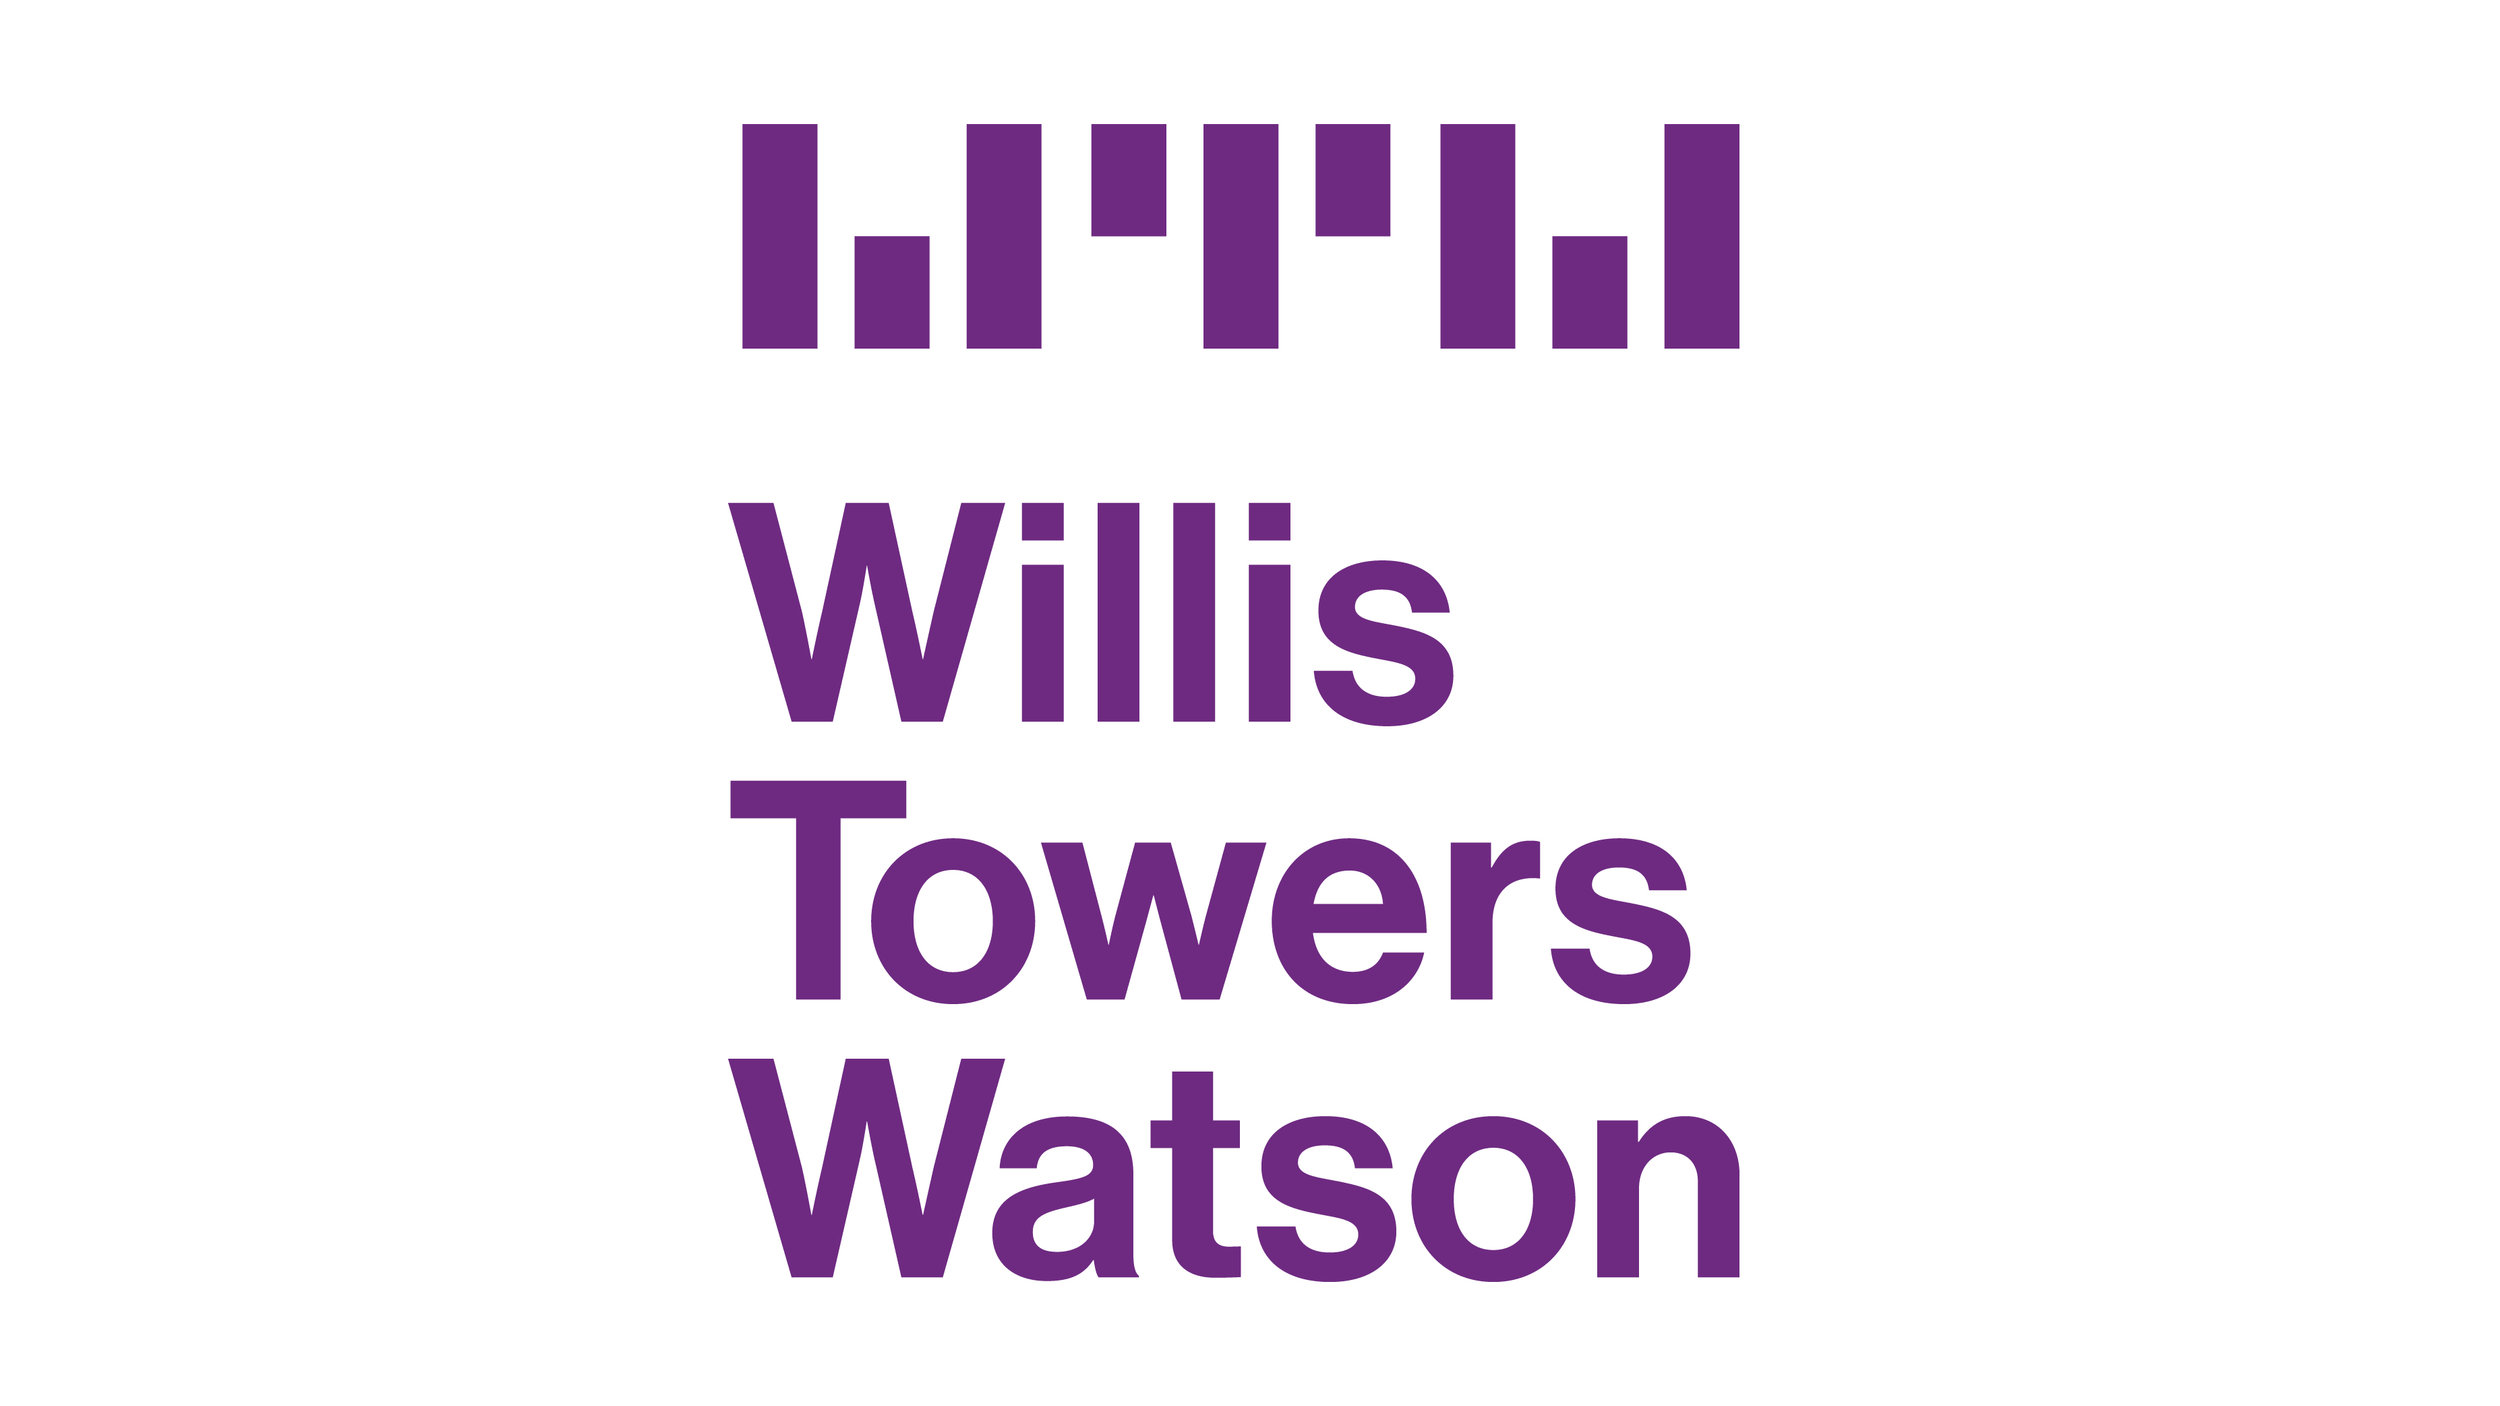 willis-towers-watson.jpg